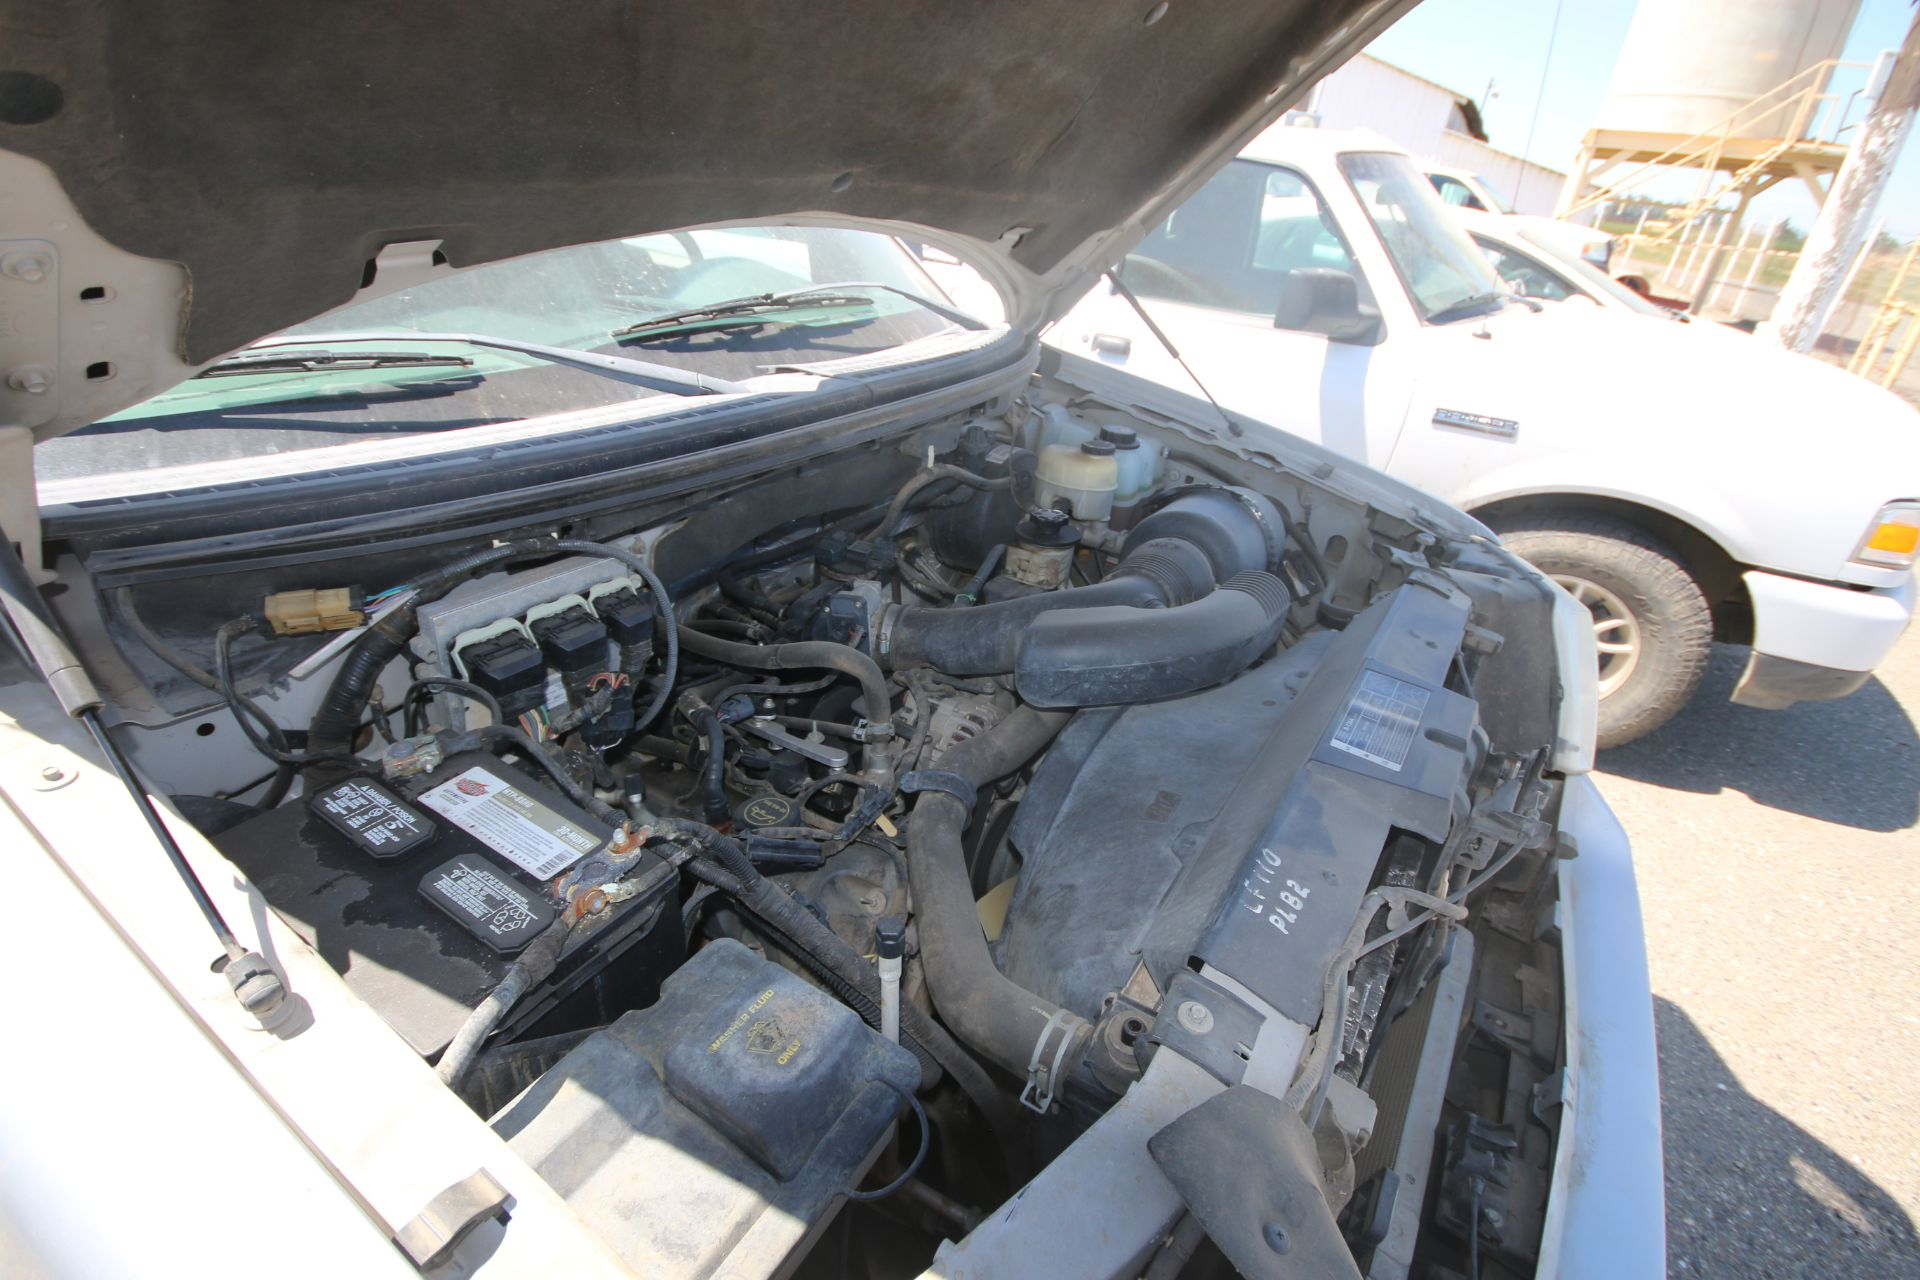 2008 Ford F150 Pick Up Truck, VIN #: 1FTRX12W7BFB9710, with 214,817 Miles, Started Up as of 06/24/ - Image 24 of 24